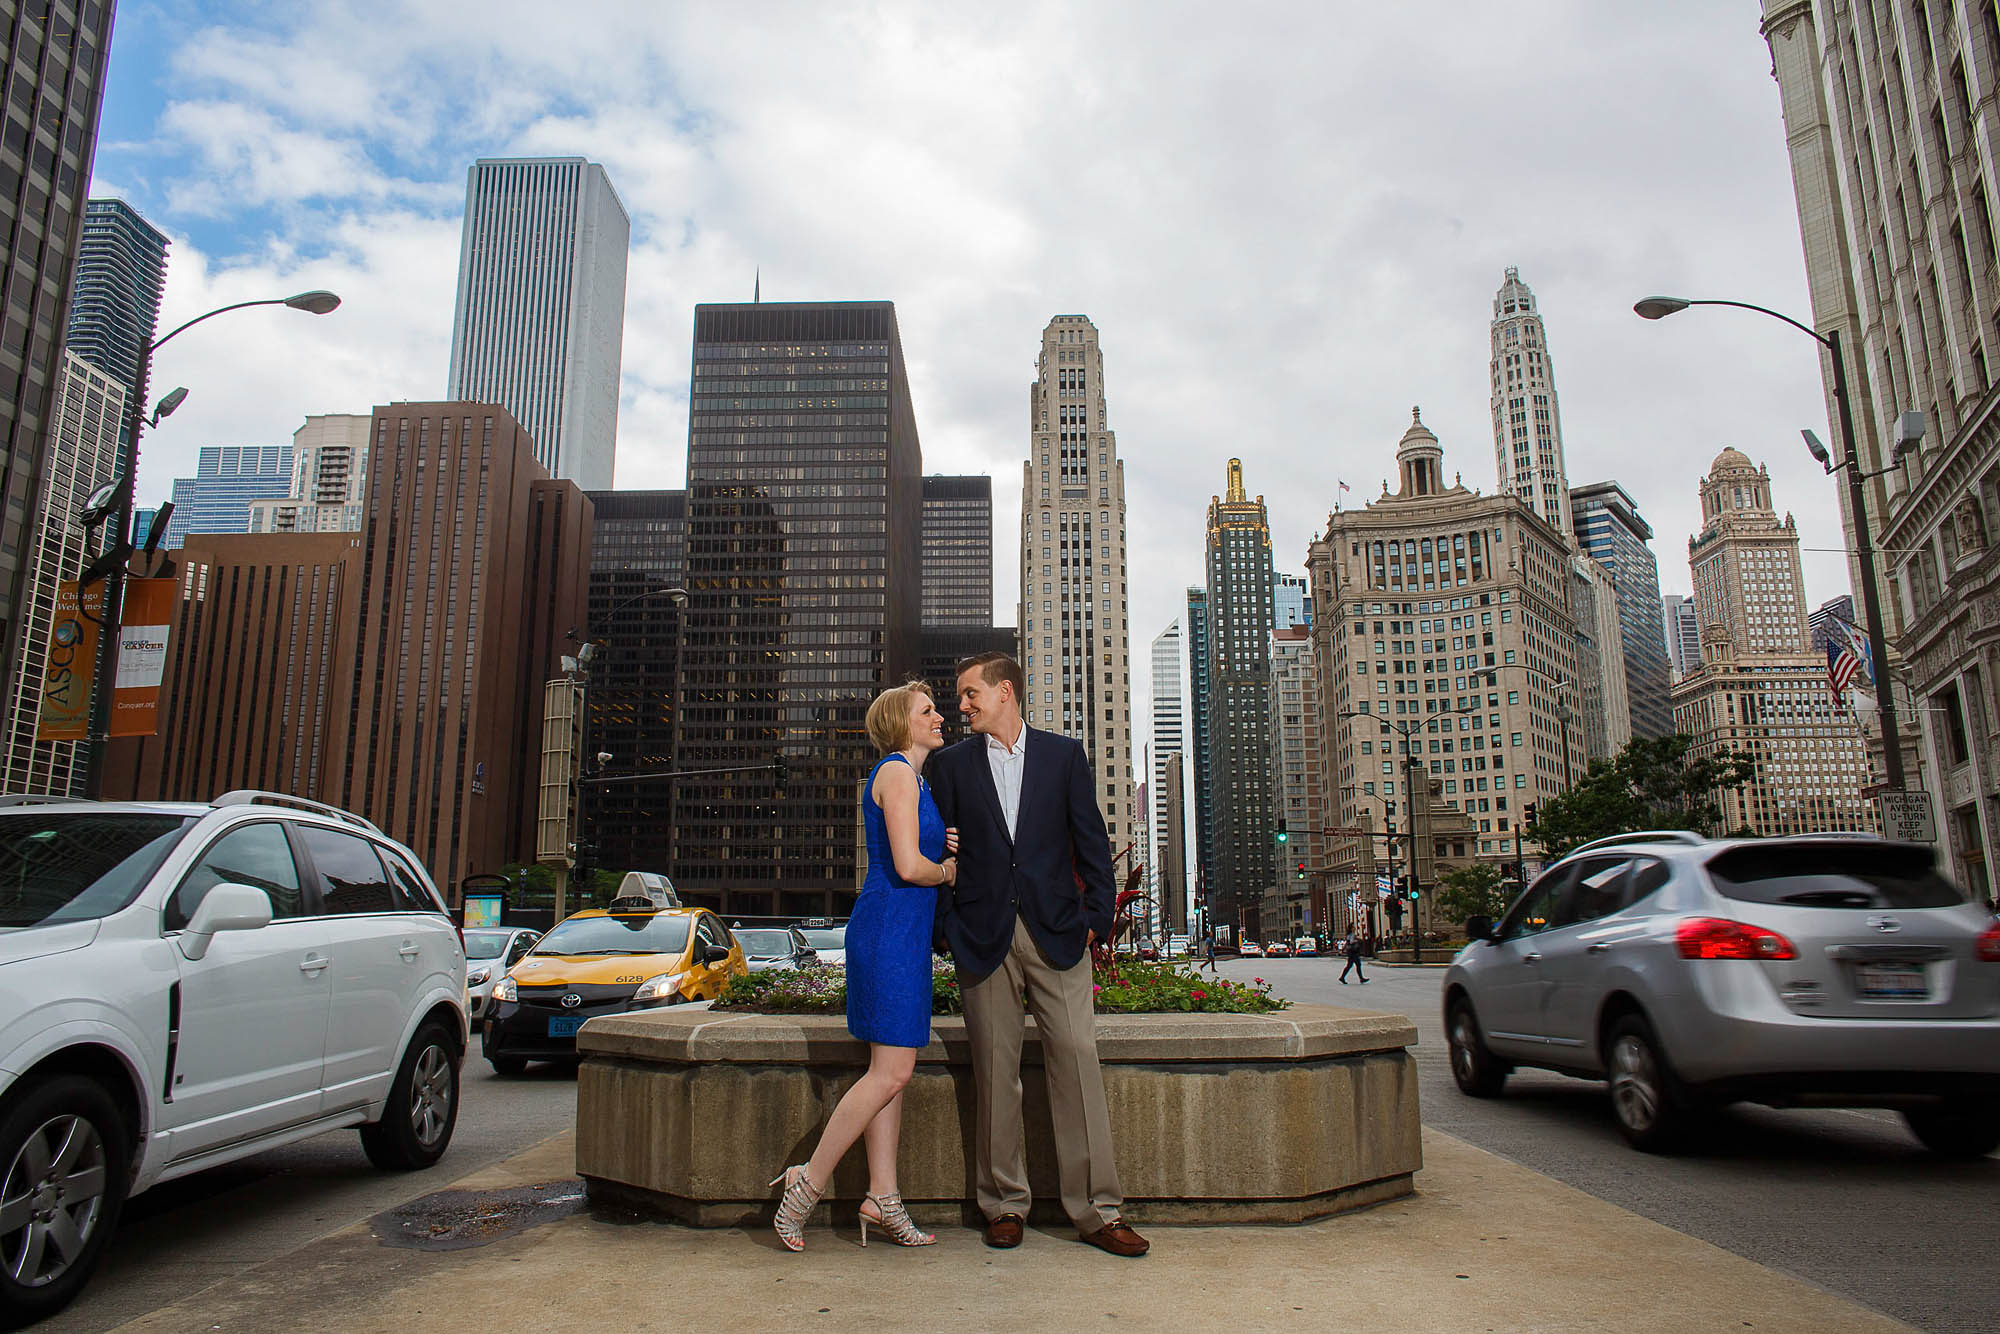 Engaged couple on Michigan Avenue in Downtown Chicago, Illinois.